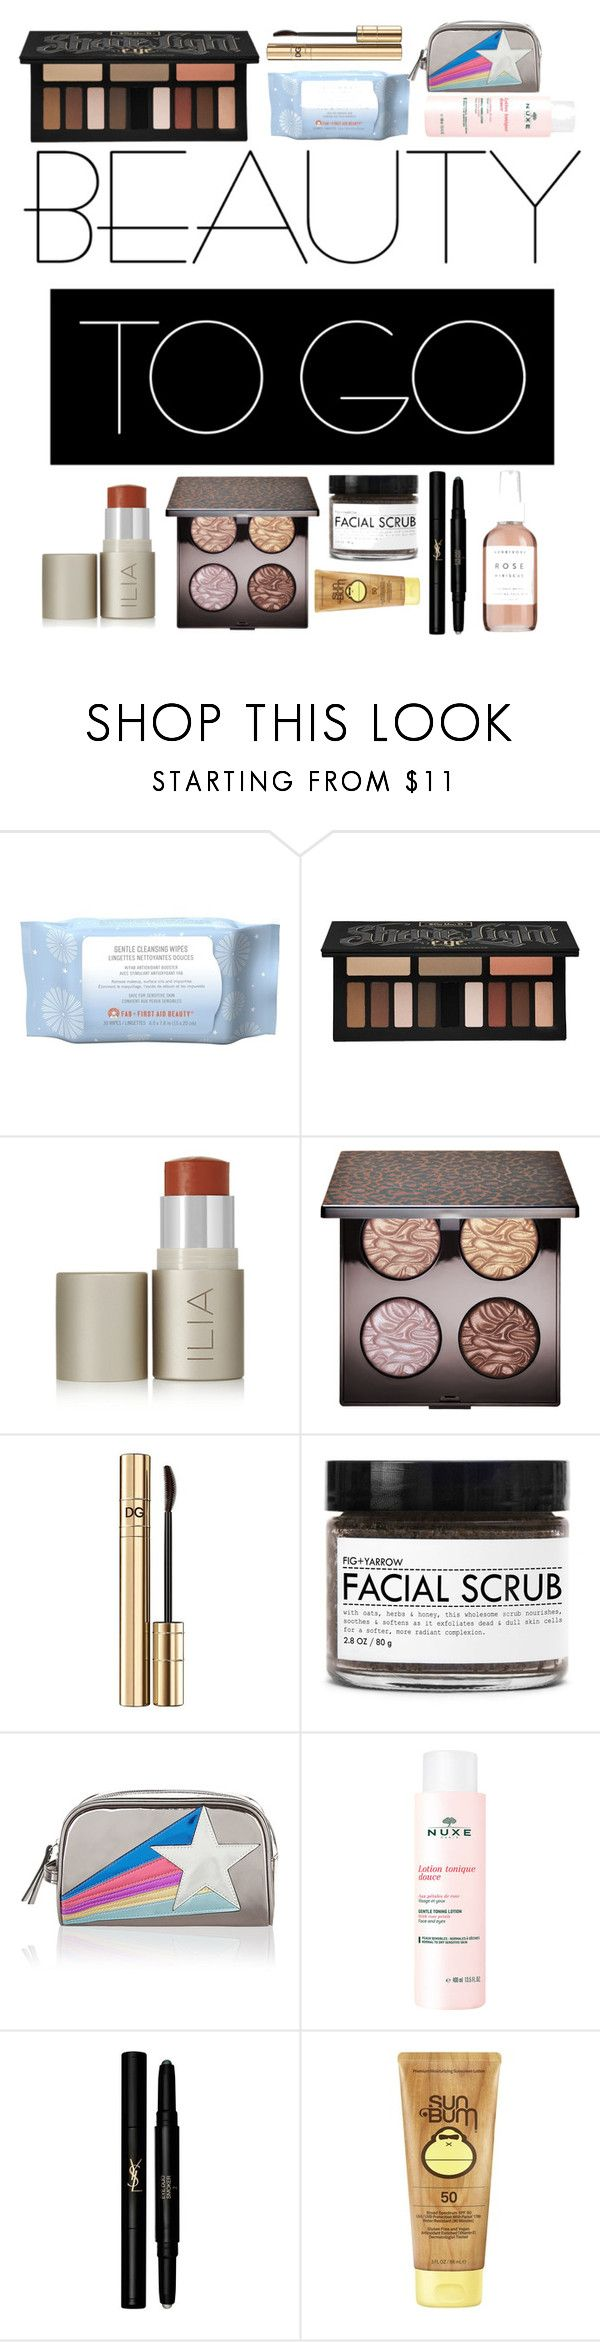 """""""Beauty to Go"""" by niltiacaitlin ❤ liked on Polyvore featuring beauty, First Aid Beauty, Kat Von D, Ilia, Laura Mercier, Dolce&Gabbana, Fig+Yarrow, Accessorize, Nuxe and Yves Saint Laurent"""